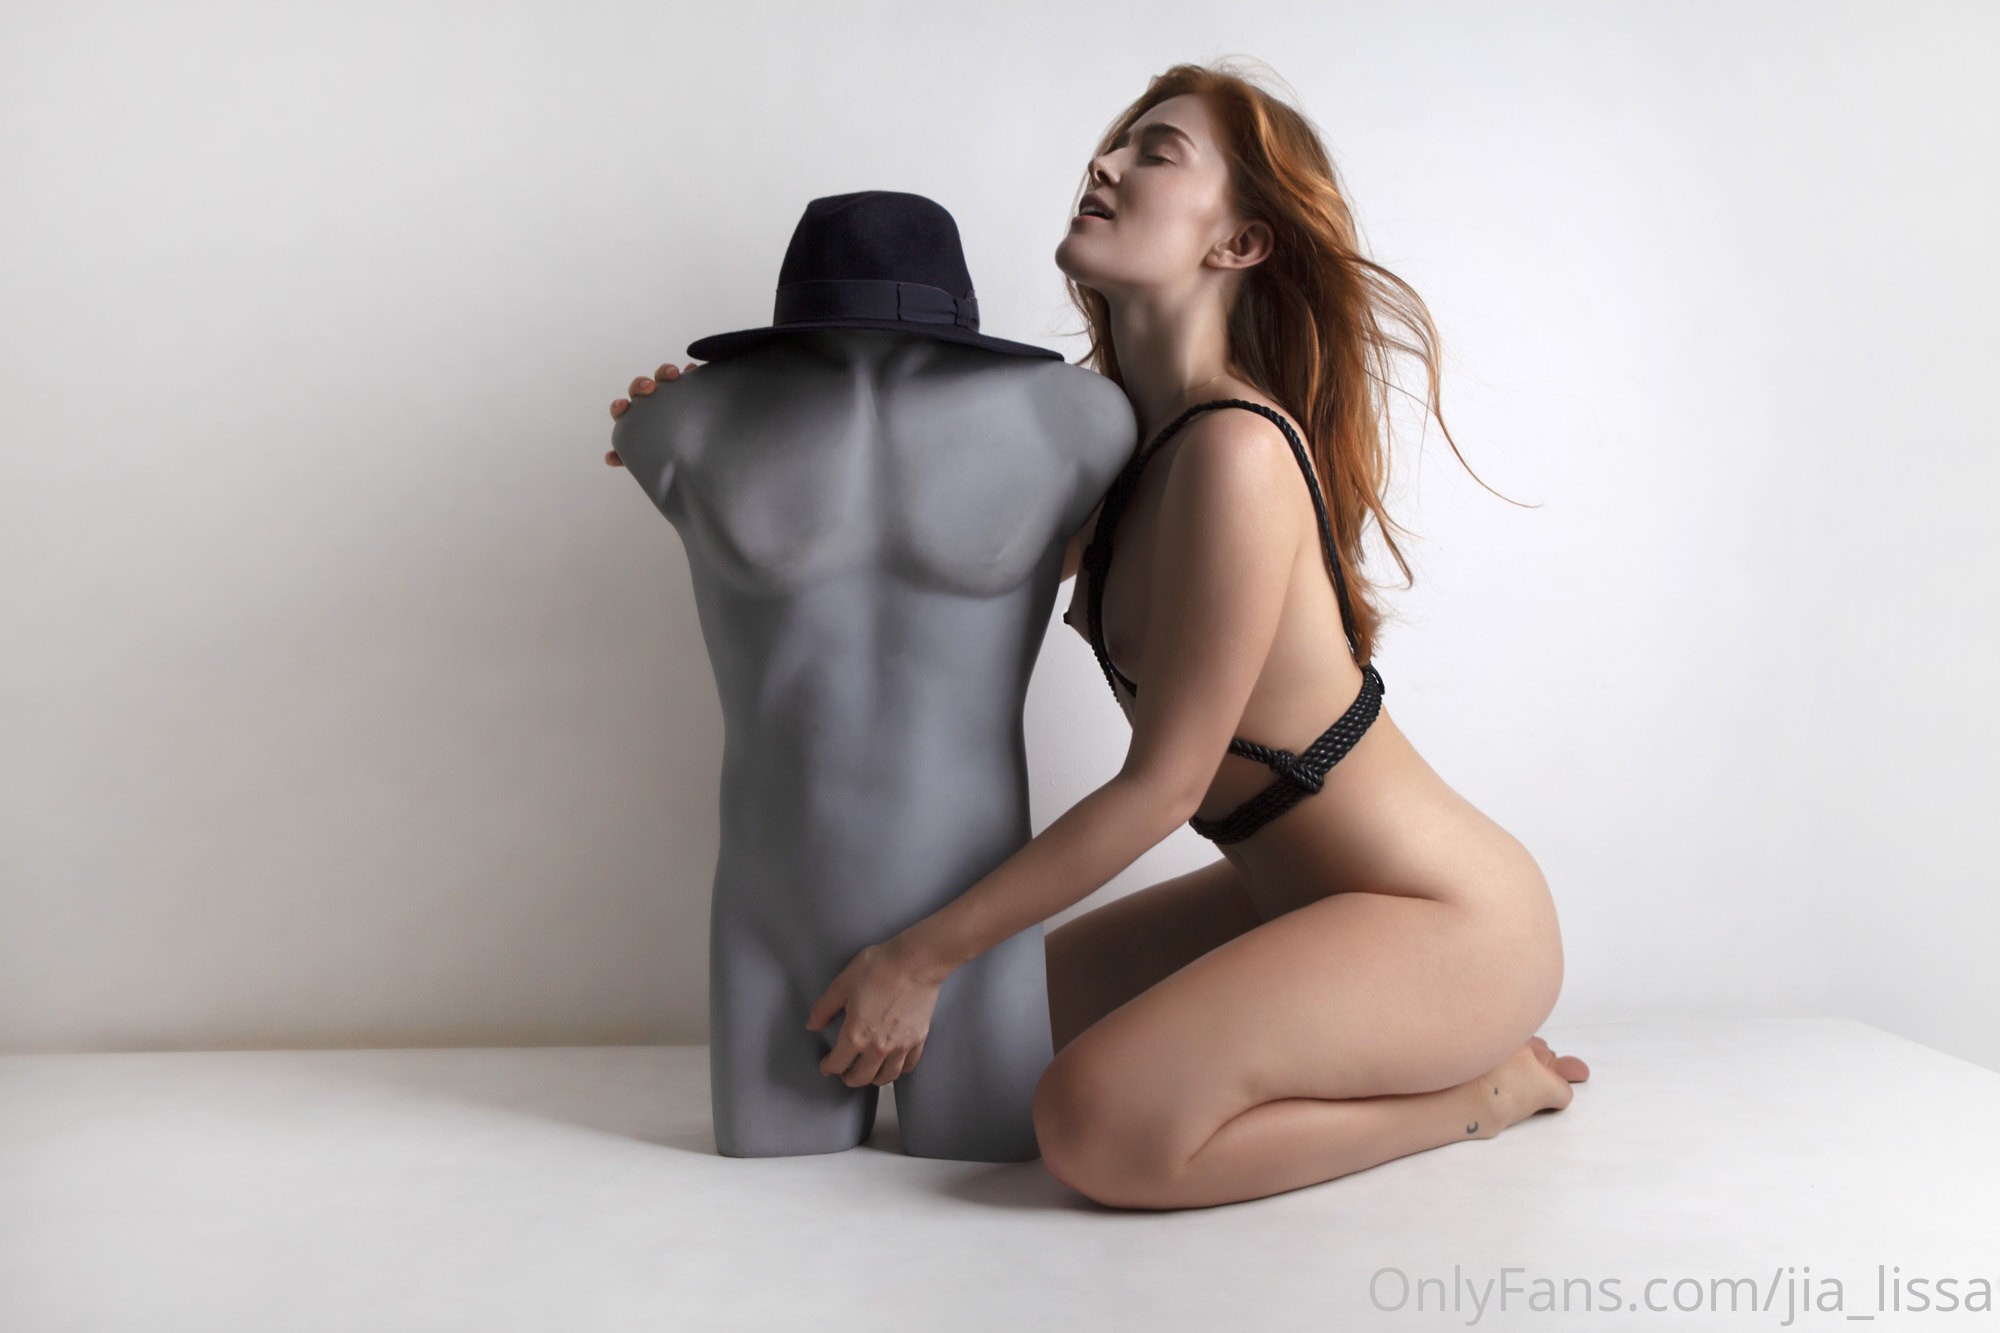 Jia Lissa Porn OnlyFans Leaked Nudes 70